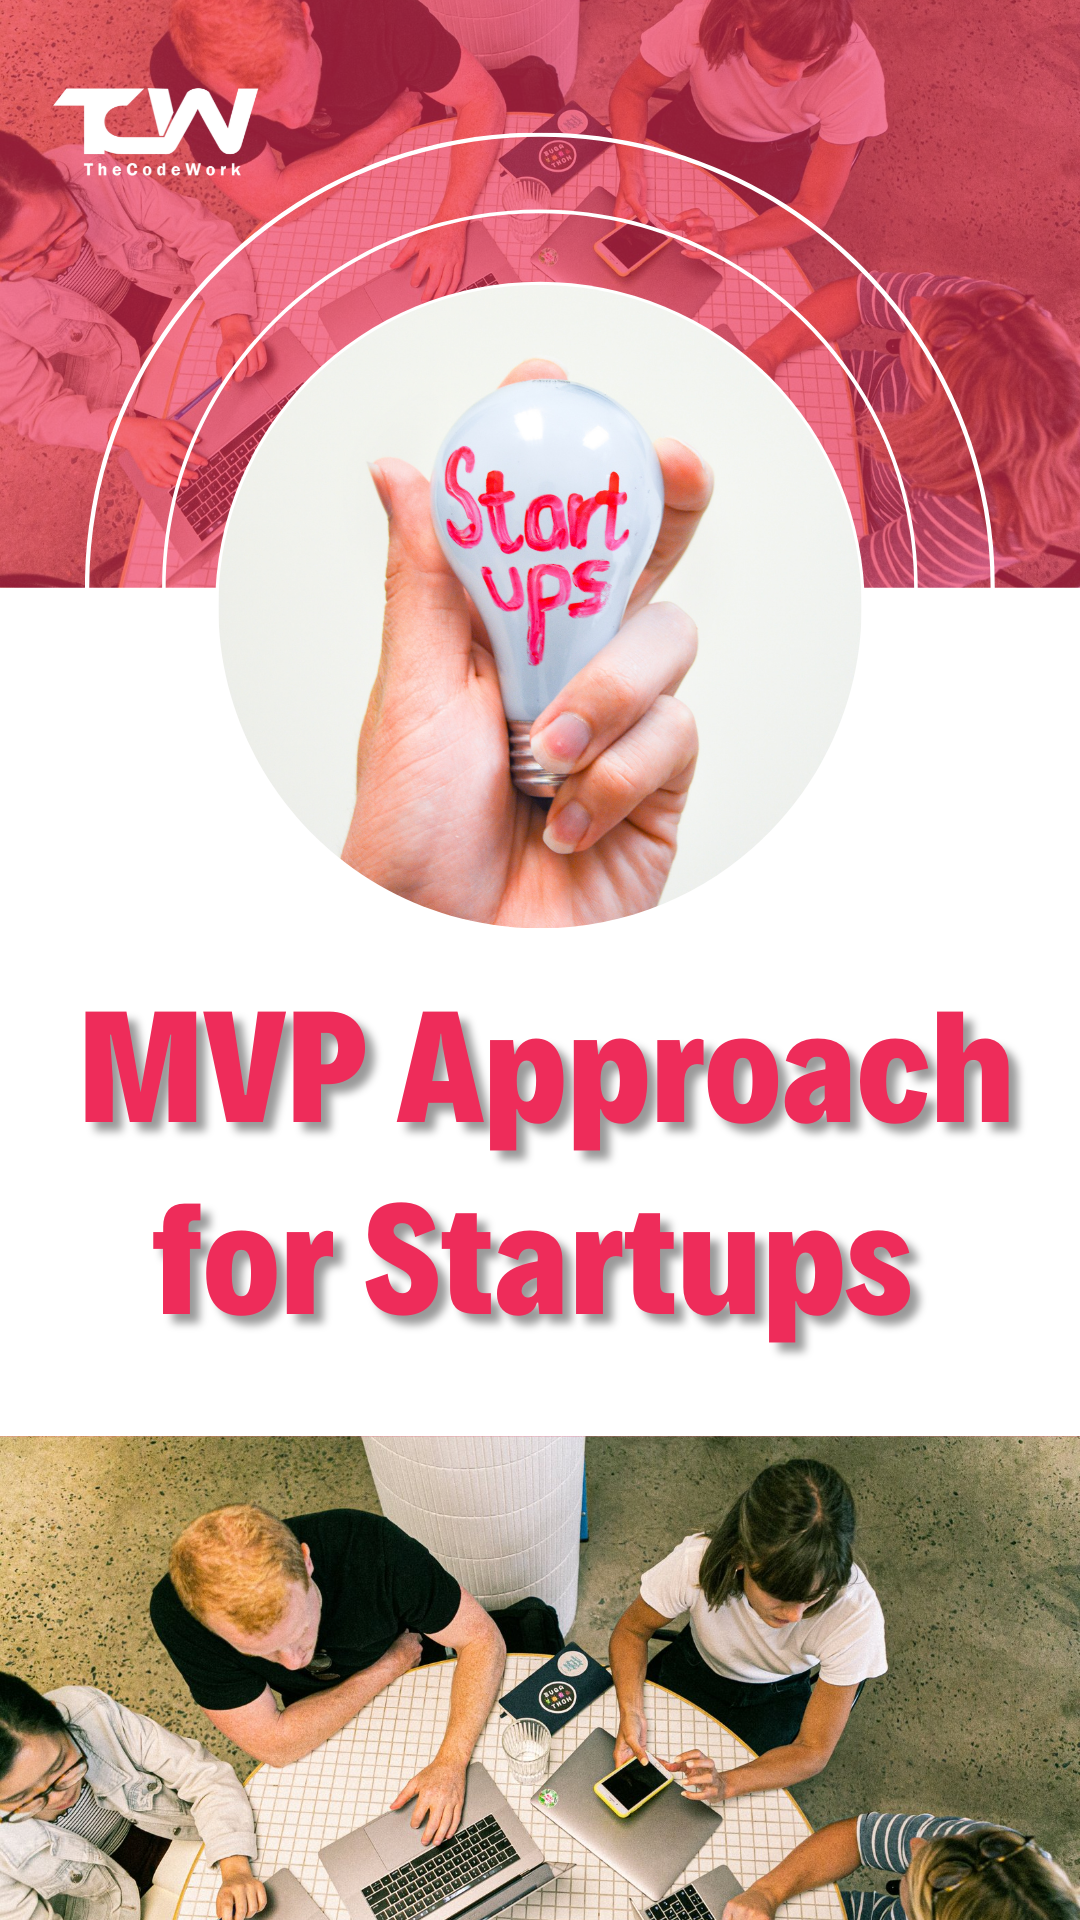 MVP Approach for Startups –  What and how?